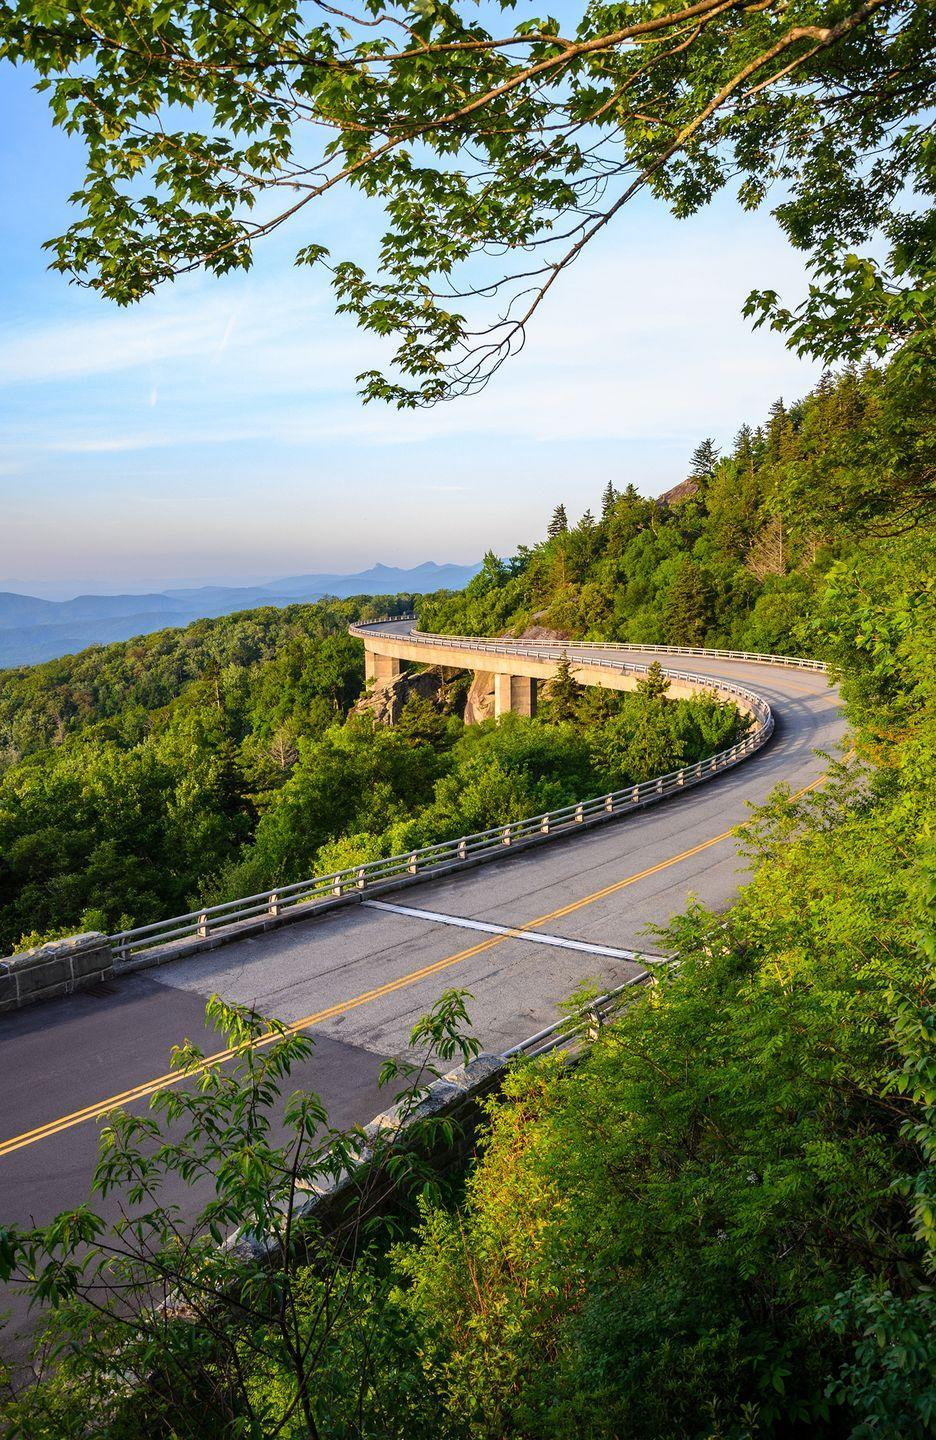 "<p><strong>The Drive:</strong> <a href=""https://www.virginia.org/blueridgeparkway/"" rel=""nofollow noopener"" target=""_blank"" data-ylk=""slk:Blue Ridge Parkway"" class=""link rapid-noclick-resp"">Blue Ridge Parkway</a></p><p><strong>The Scene:</strong> The Blue Ridge Parkway begins in the northern Shenandoah Valley and travels 469 miles into North Carolina, as you head through the Appalachian Mountains for some of the best scenery in Virginia. </p><p><strong>The Pit-Stop:</strong> Plan a family vacation at the <a href=""http://www.peaksofotter.com/"" rel=""nofollow noopener"" target=""_blank"" data-ylk=""slk:Peaks of Otter"" class=""link rapid-noclick-resp"">Peaks of Otter</a>, a scenic setting that has attracted travelers since the 1800s. </p>"